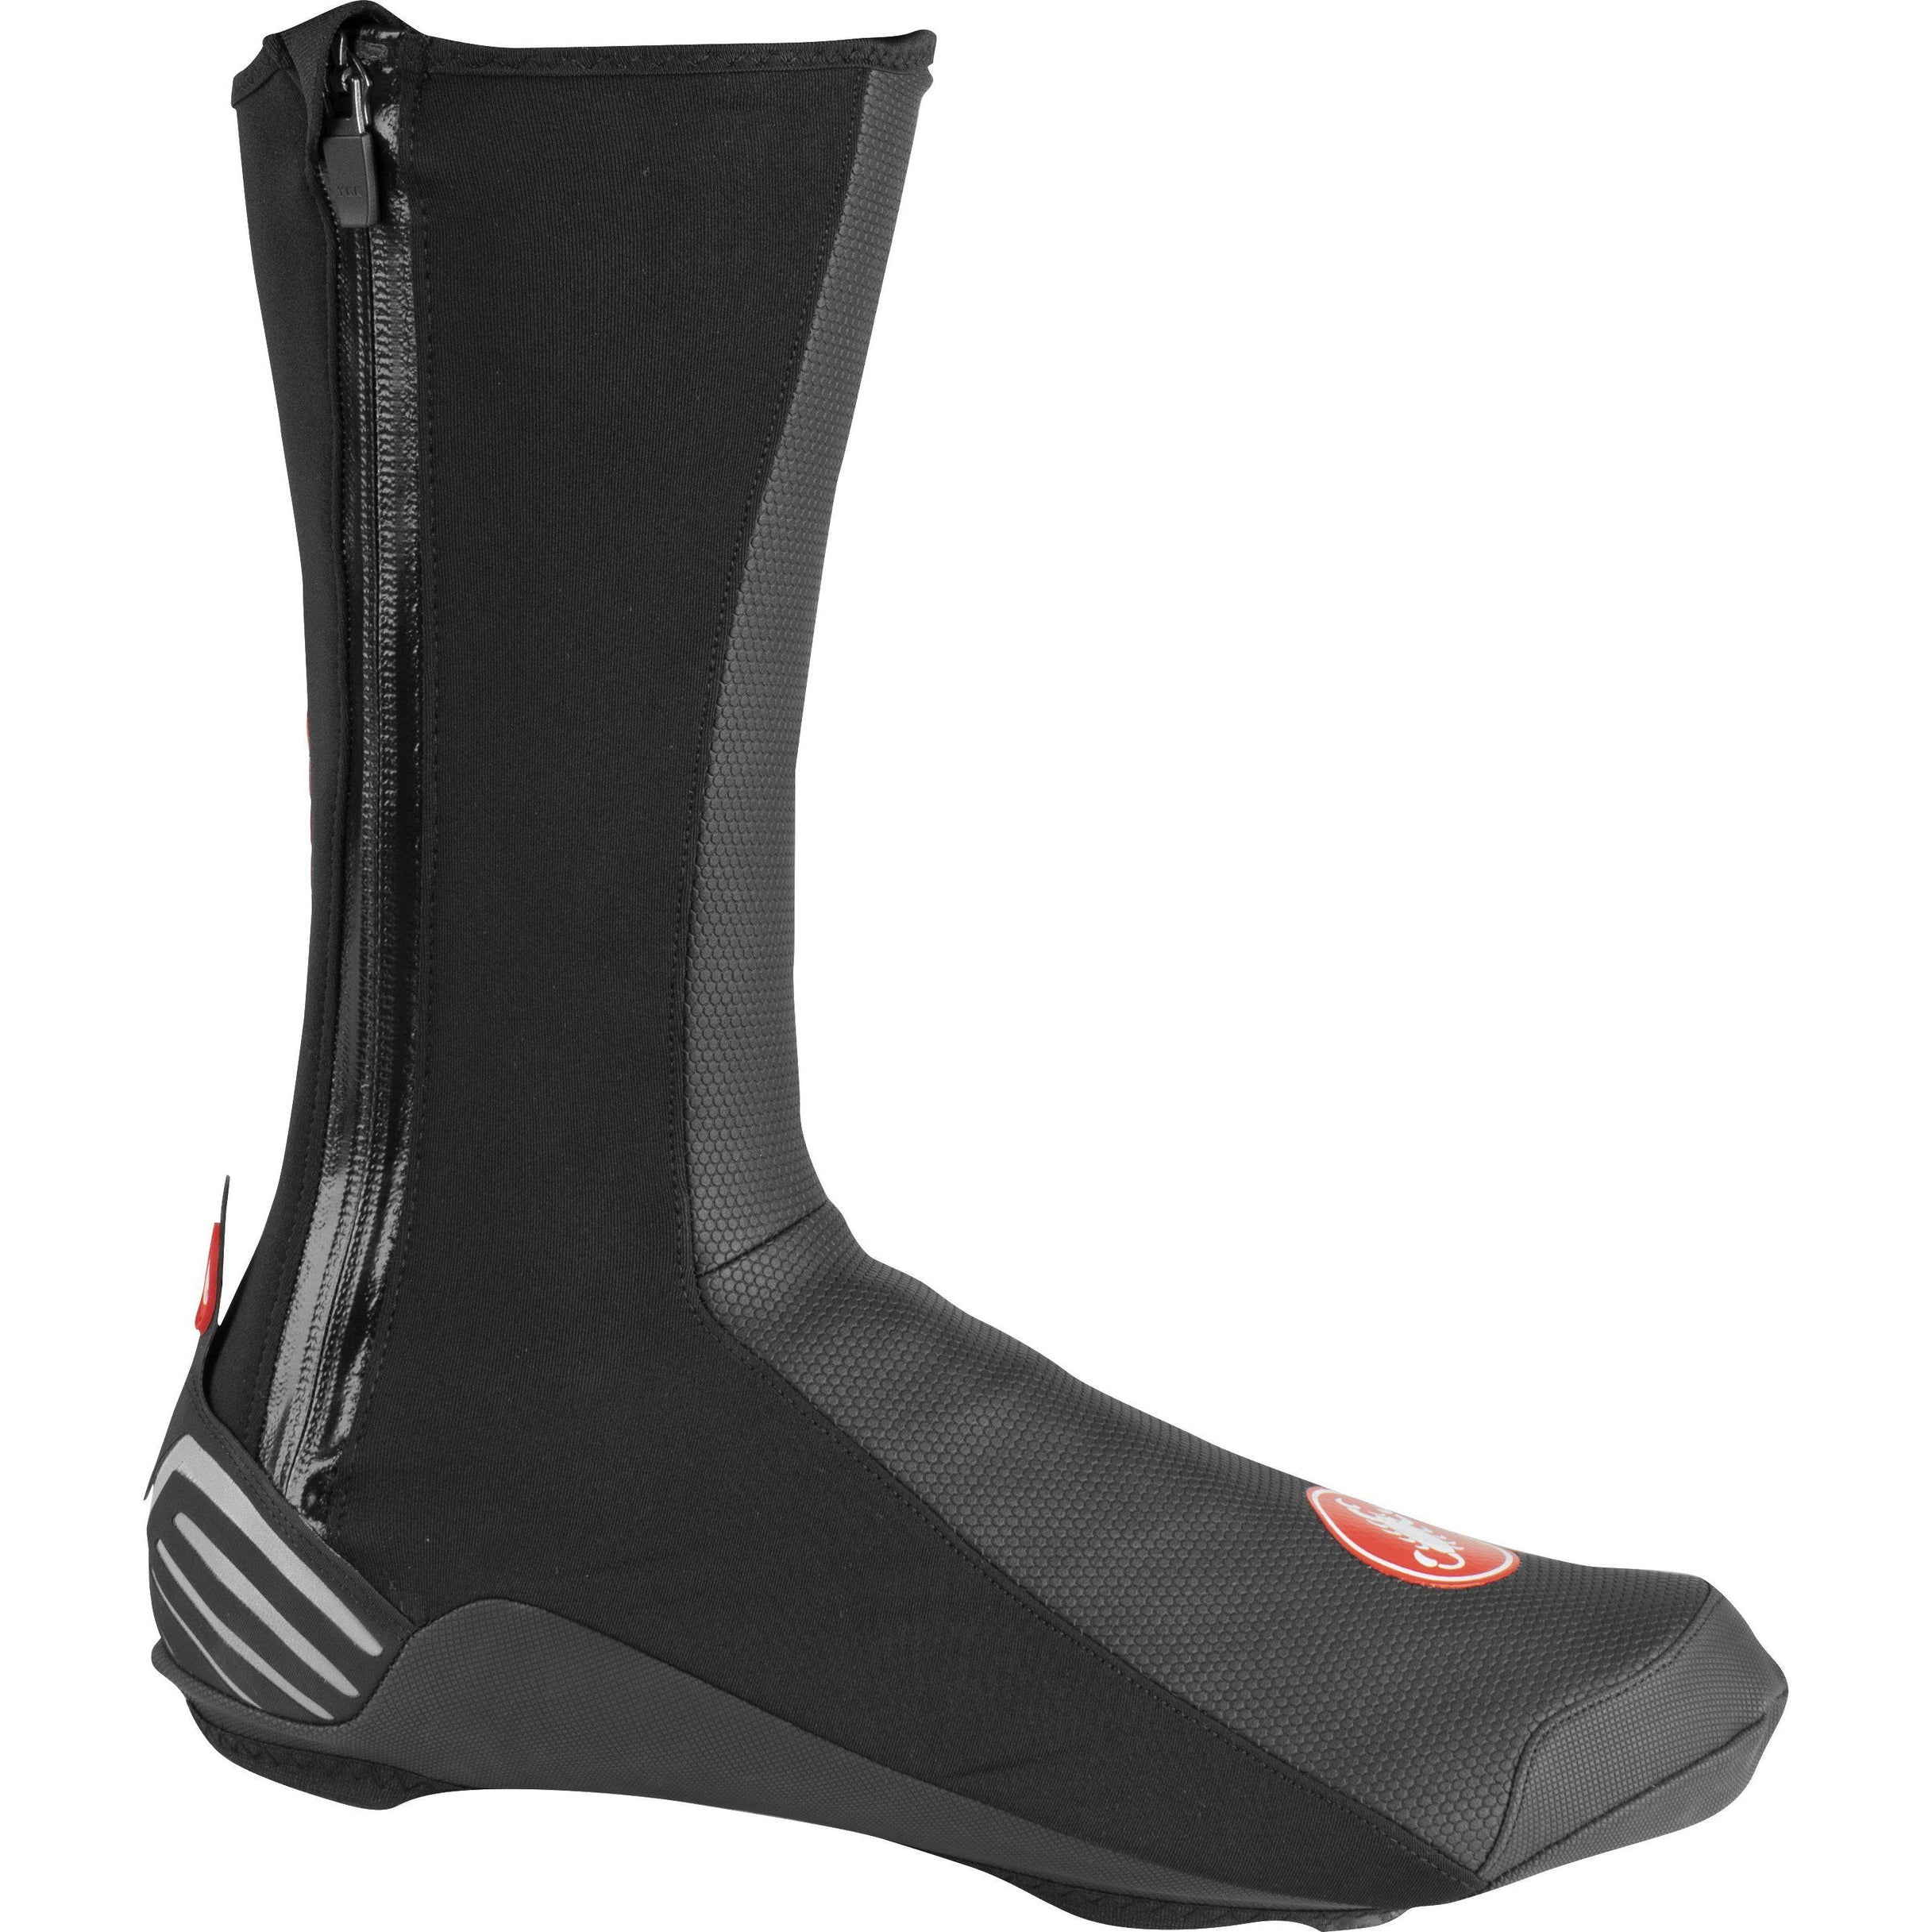 Castelli-Castelli RoS 2 Shoecover-Black-S-CS205350102-saddleback-elite-performance-cycling